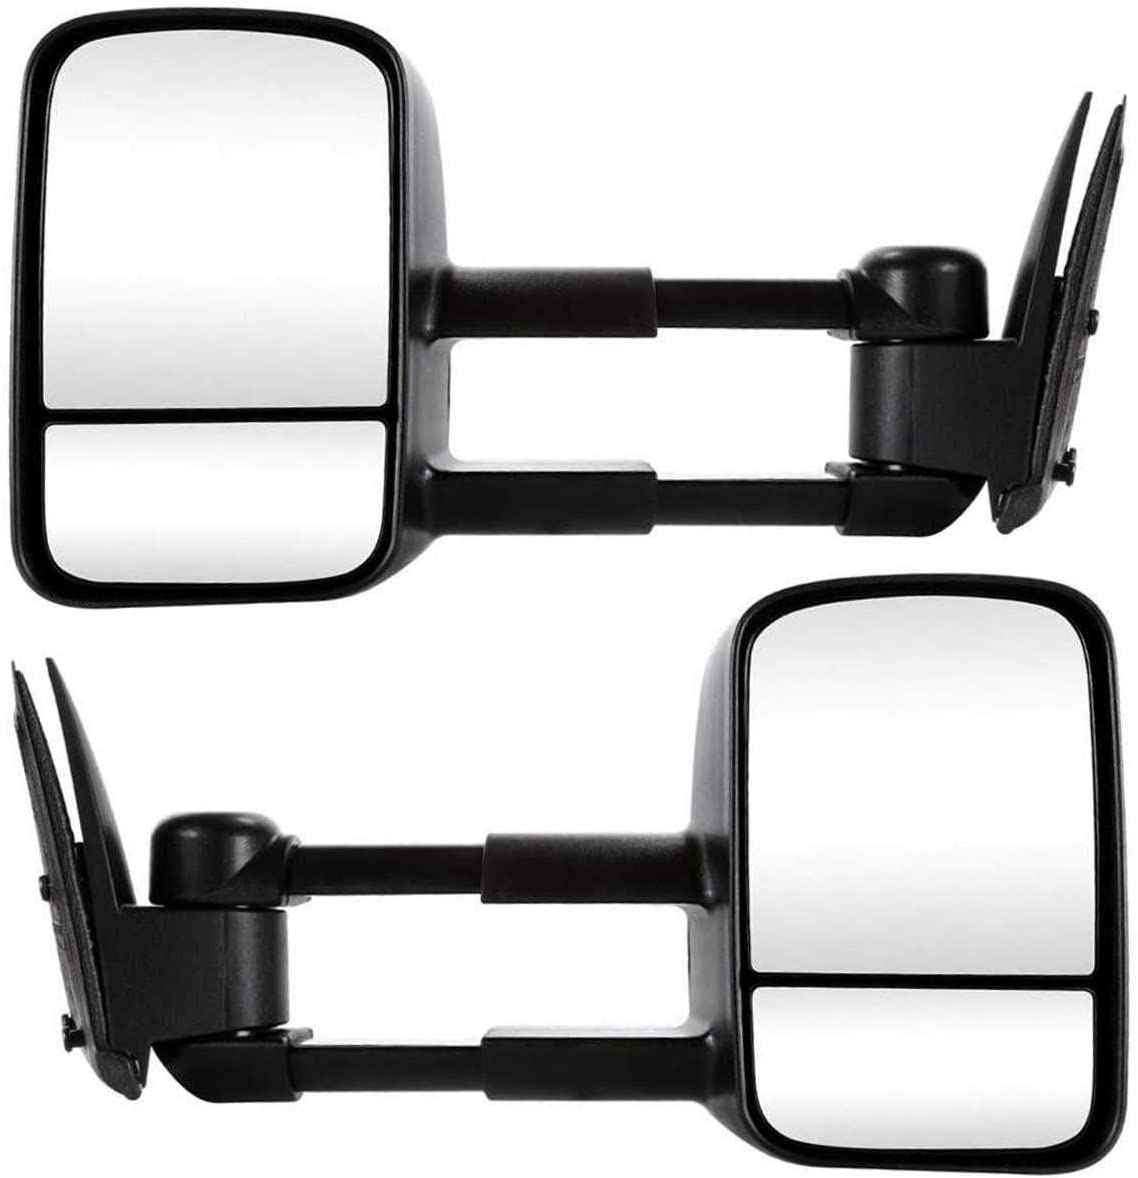 AutoShack KAPGM1320416PR Pair of Driver Side and Passenger Side Manual Towing Side View Mirrors